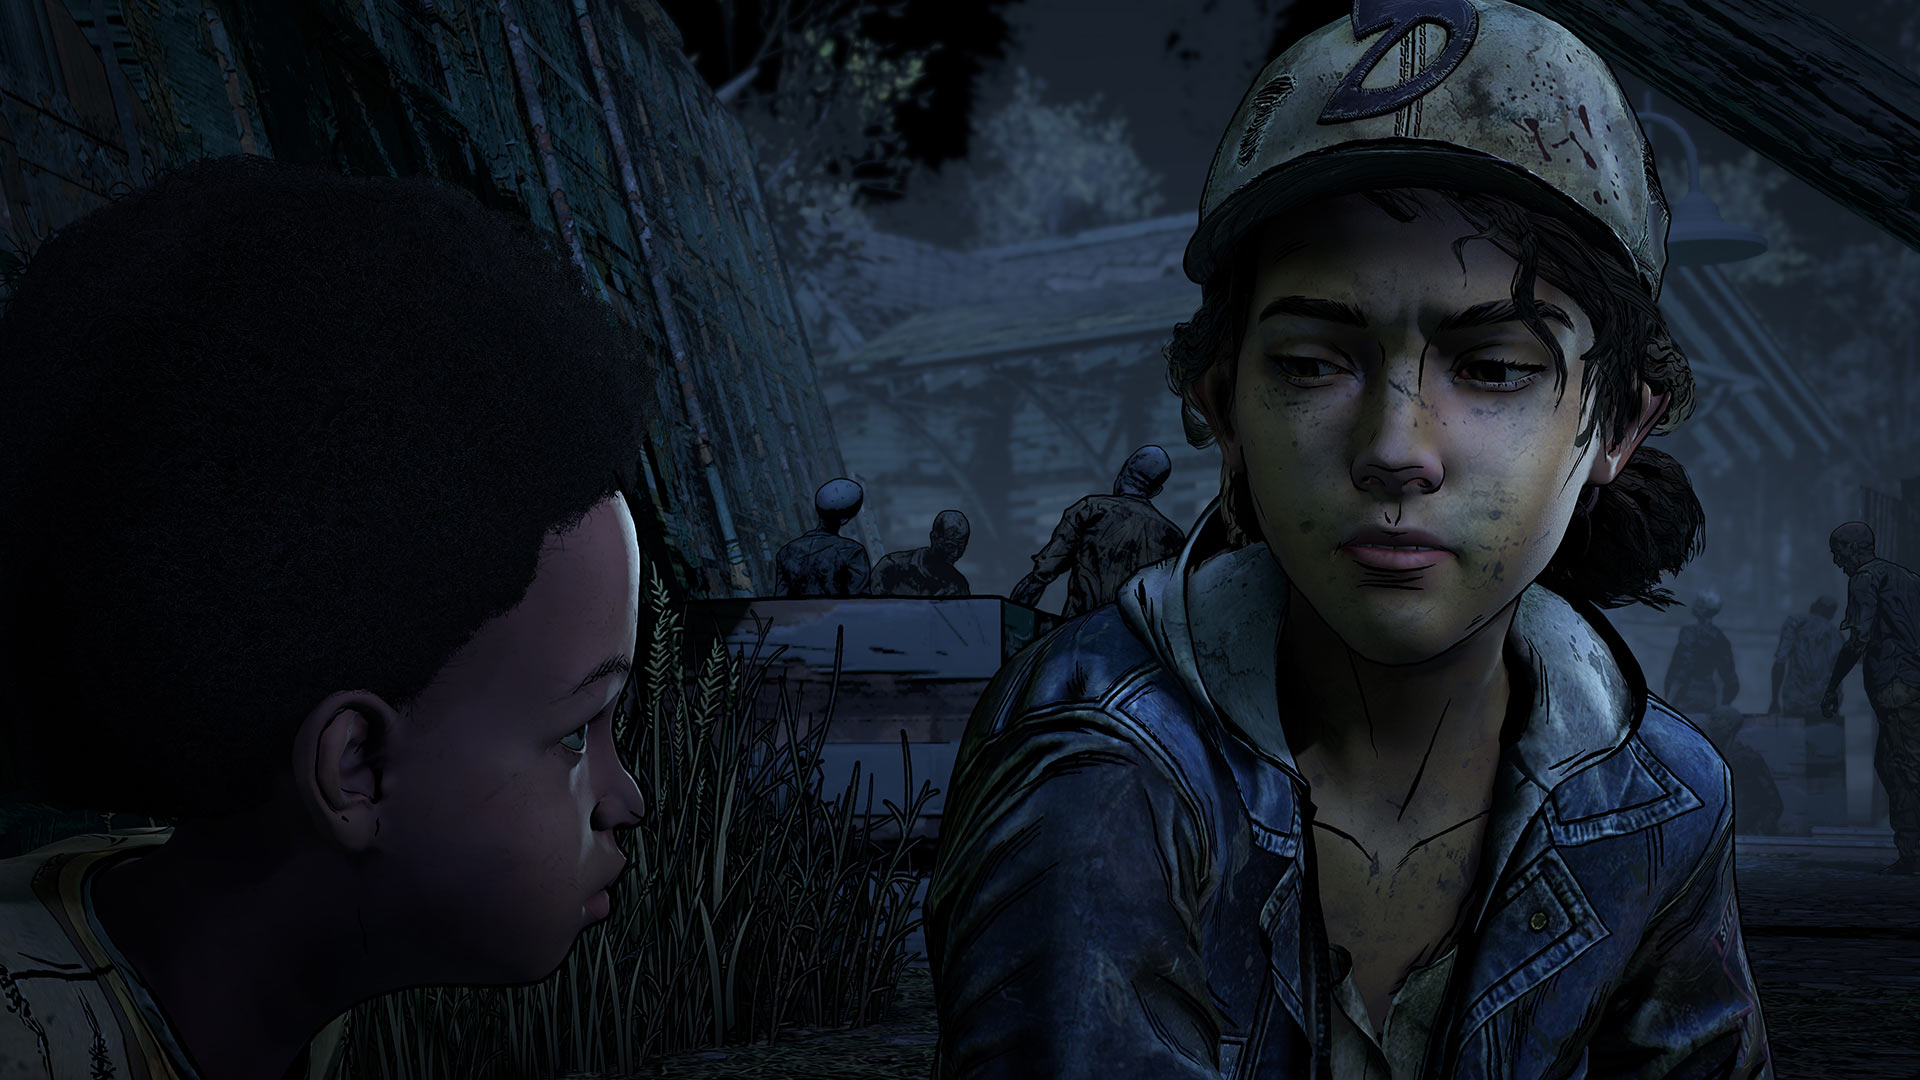 The Walking Dead: The Final Season will be finished by Skybound Games